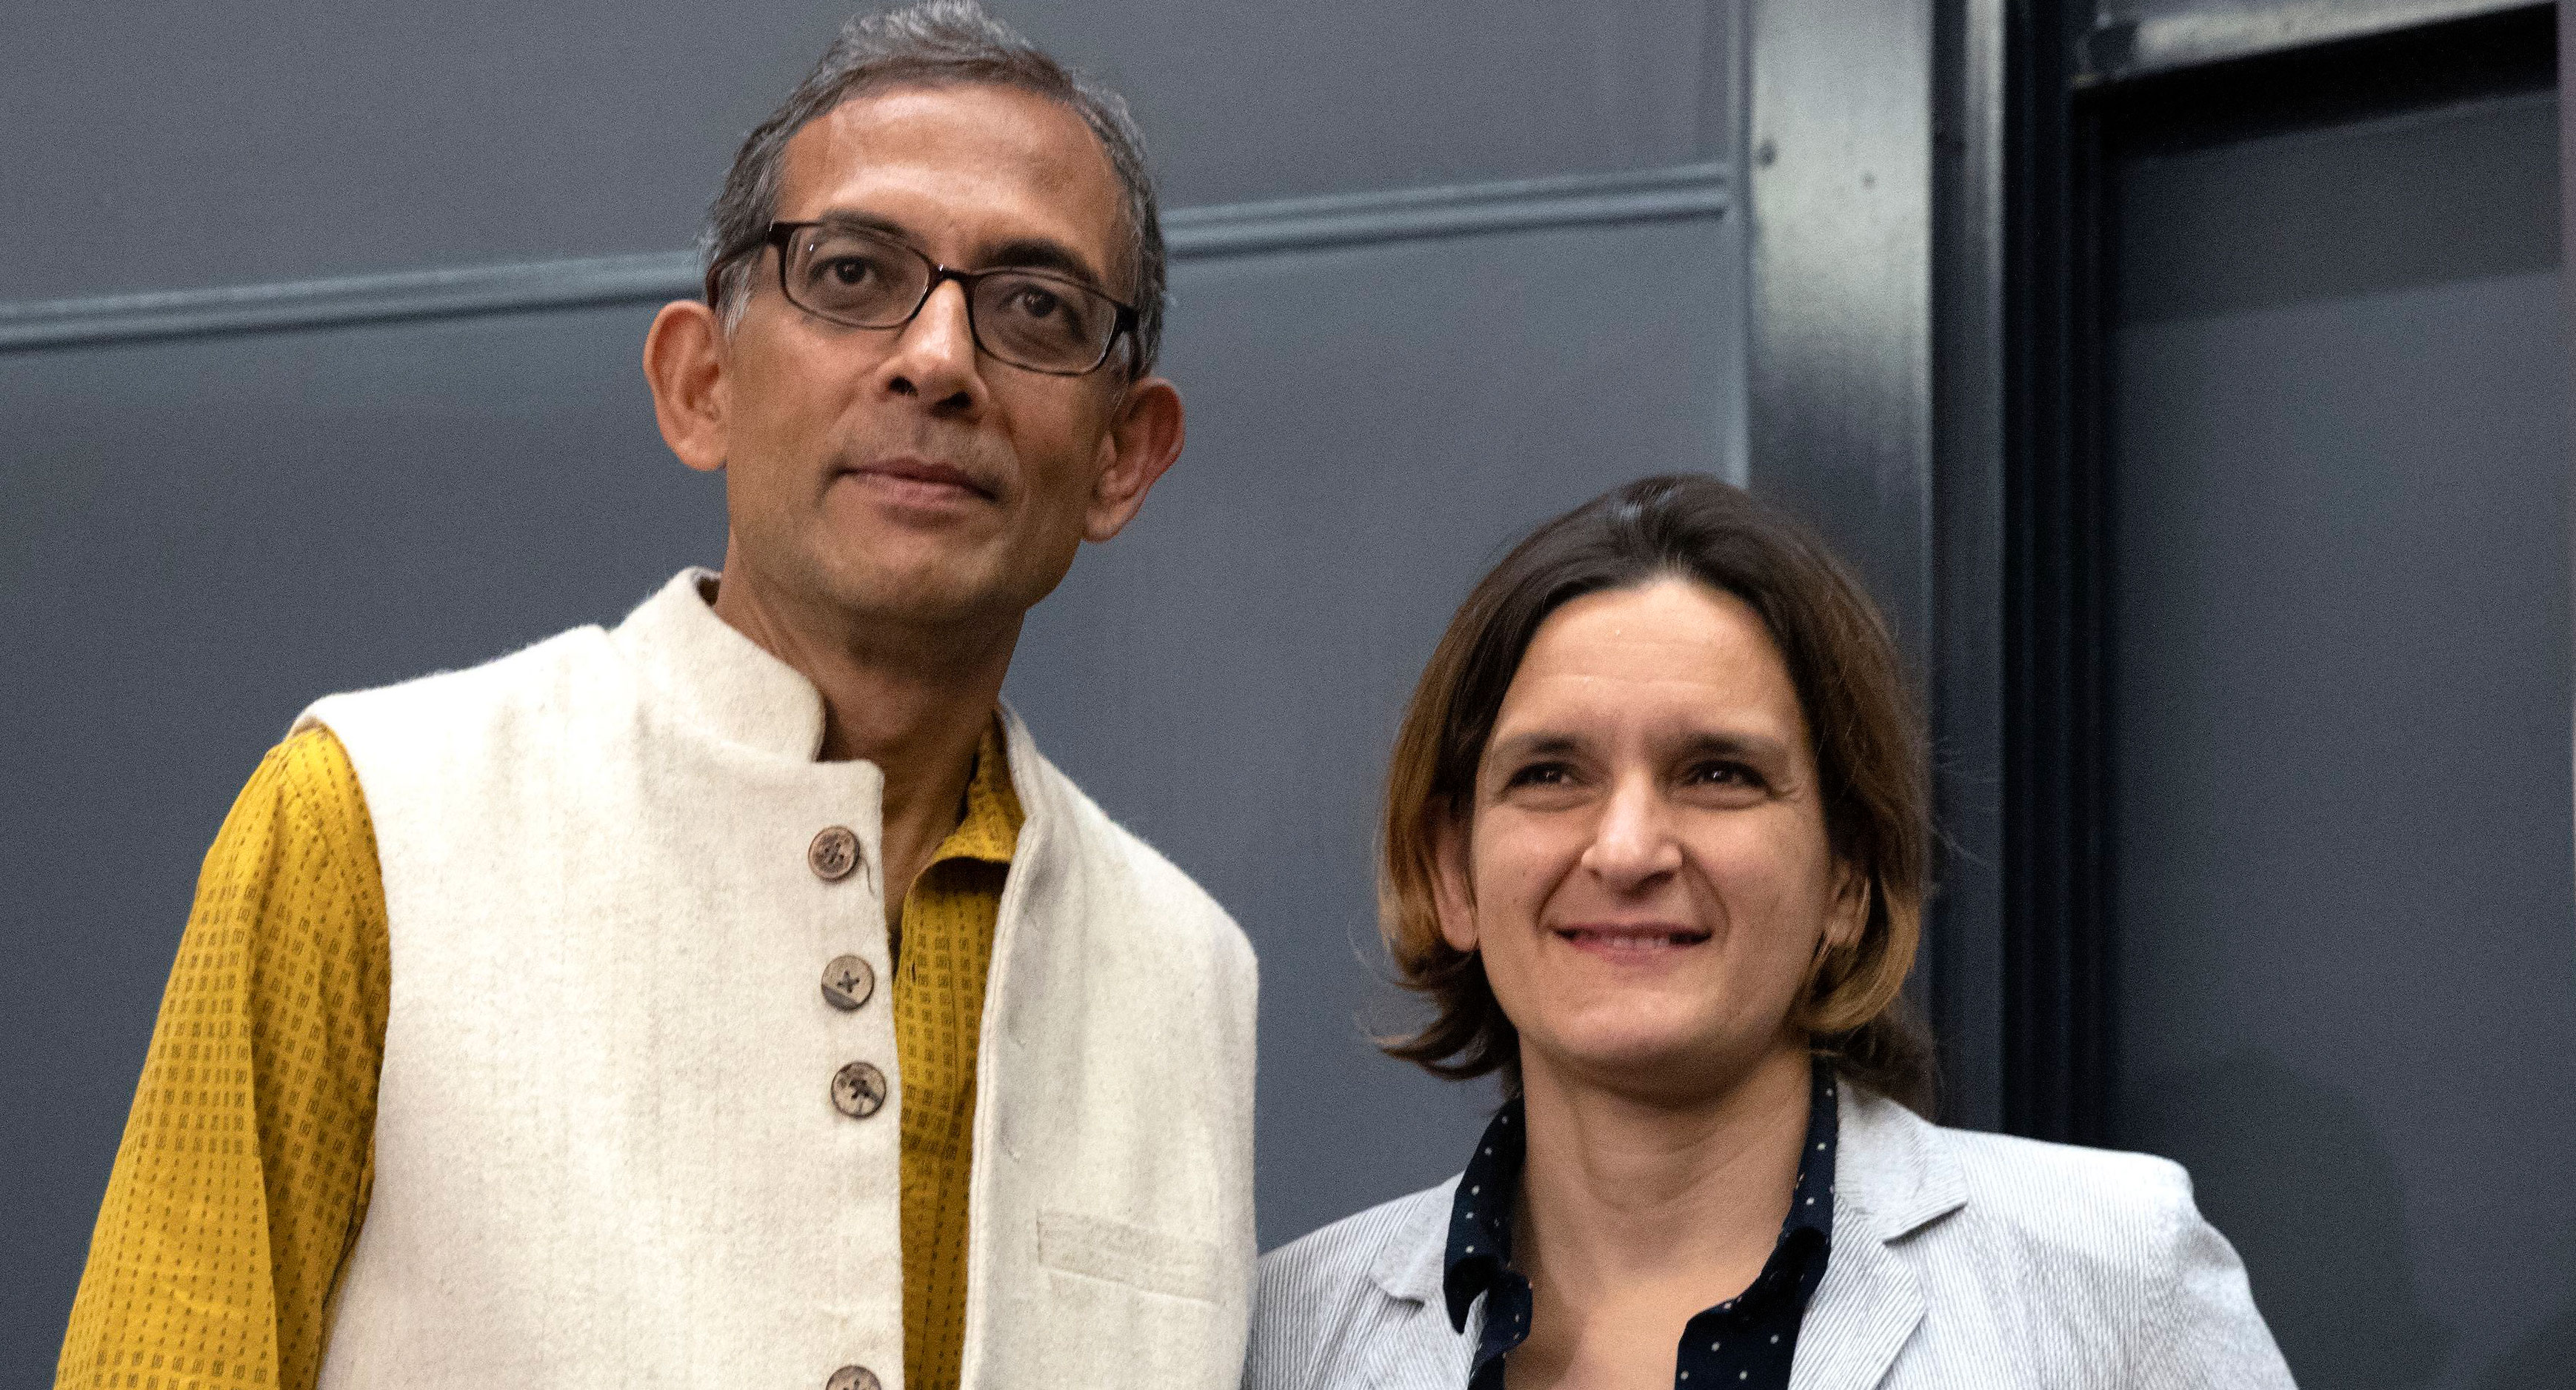 In this October 14, 2019, file photo, Nobel laureates Abhijit Banerjee and Esther Duflo attend a news conference at MIT in Cambridge.  In a discussion with each other for #readinstead Lit Fest Dialogue organised by Juggernaut Books, they highlight some of the key covid-19 questions confronting us.